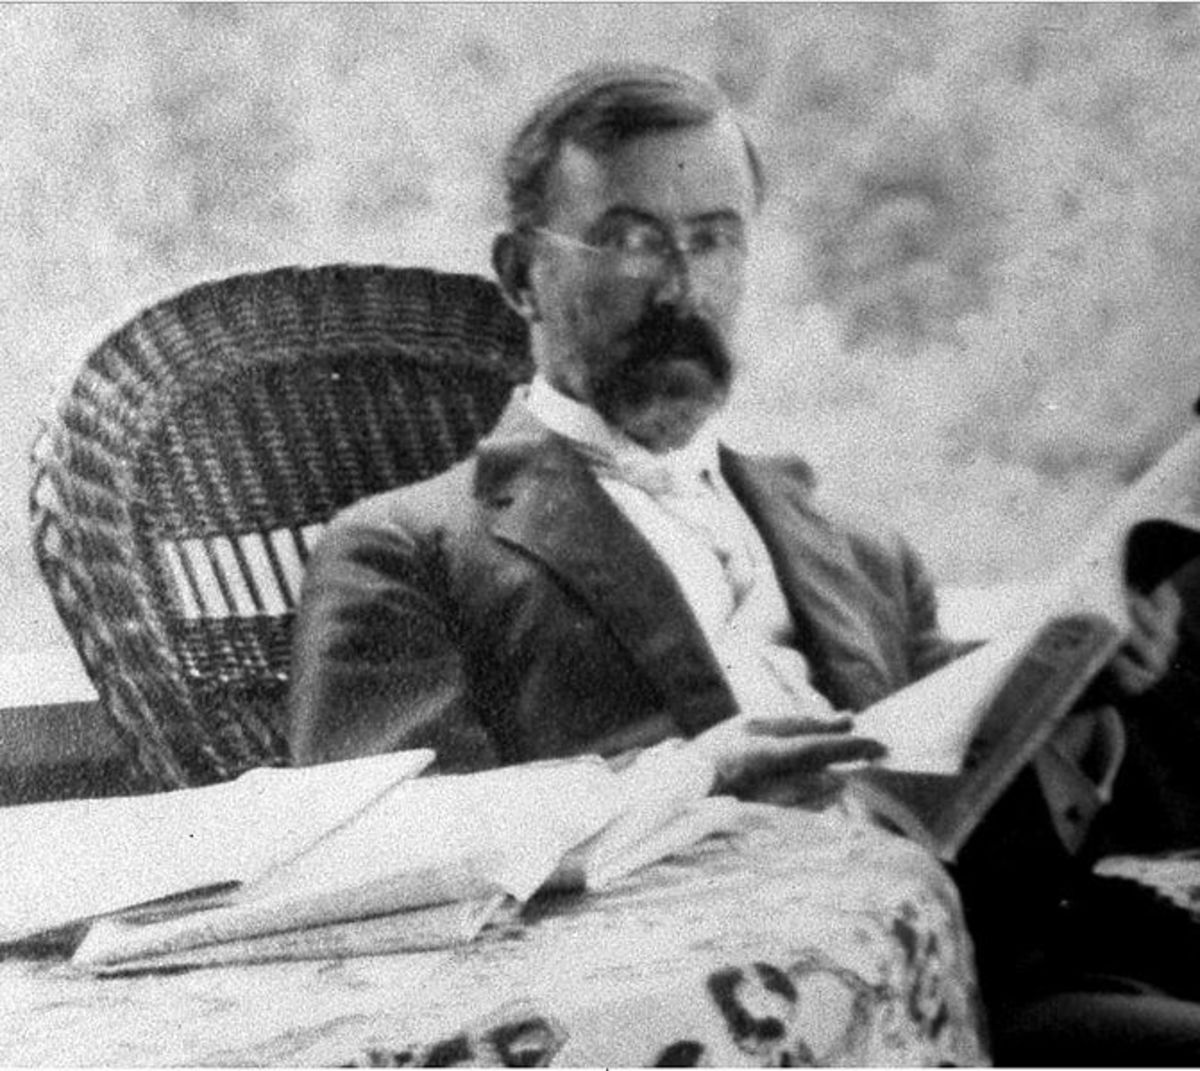 Circa 1909, photo of Charles Courtney Curran, taken by an unidentified photographer.